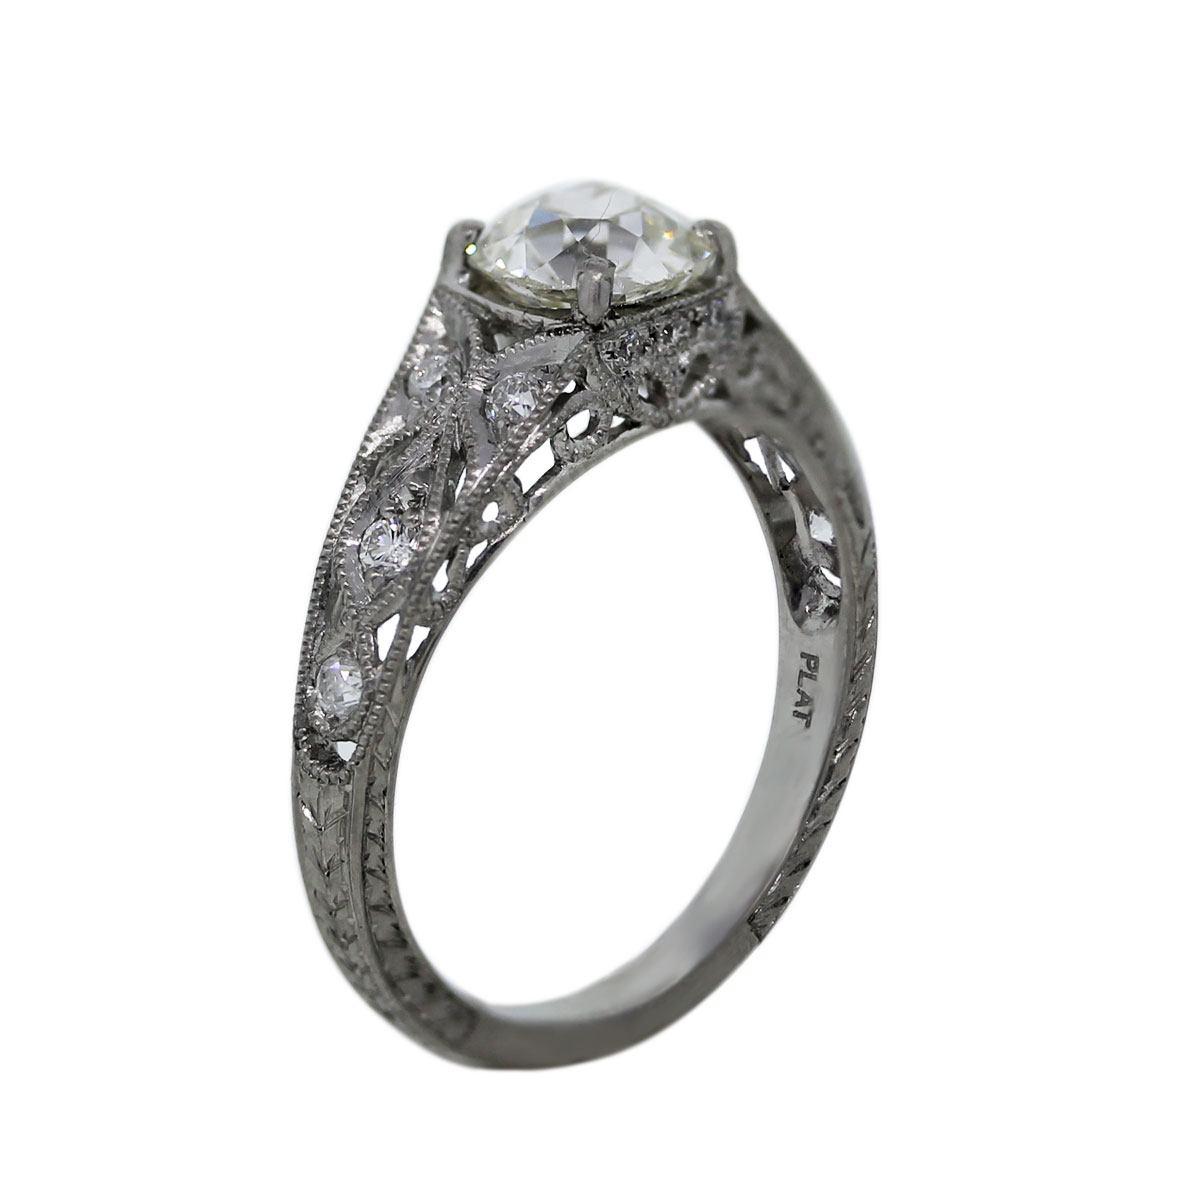 Elegant Gallery Old Fashioned Engagement Rings Engagement Wedding Diamon